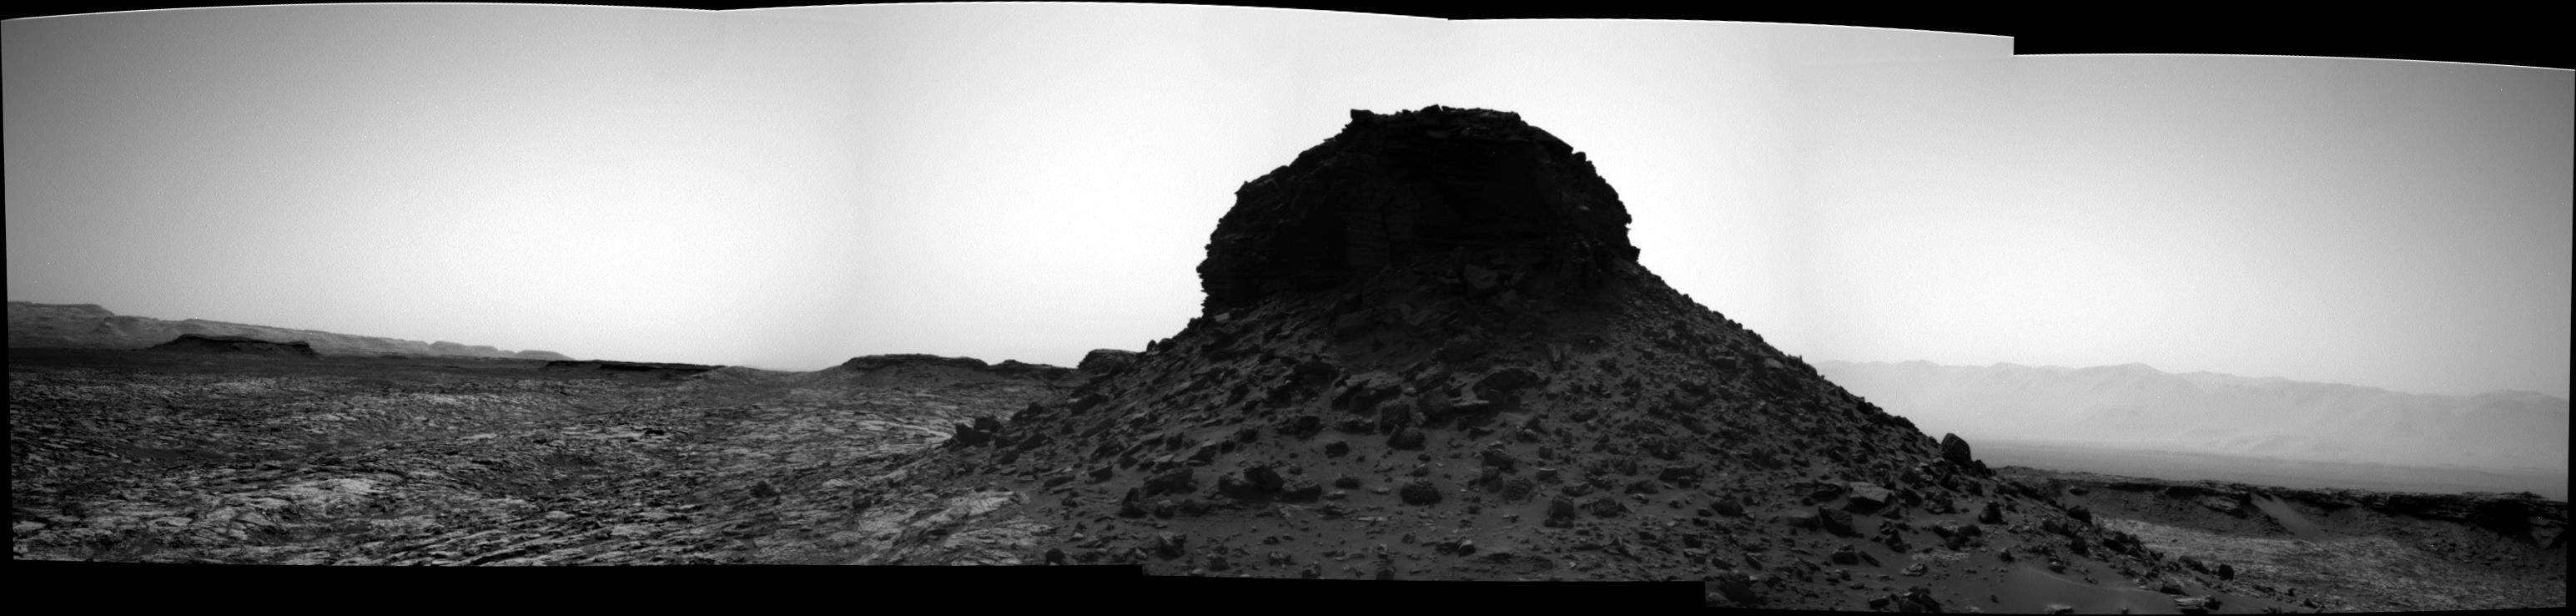 panoramic-curiosity-rover-bw-view-1-sol-1452-was-life-on-mars